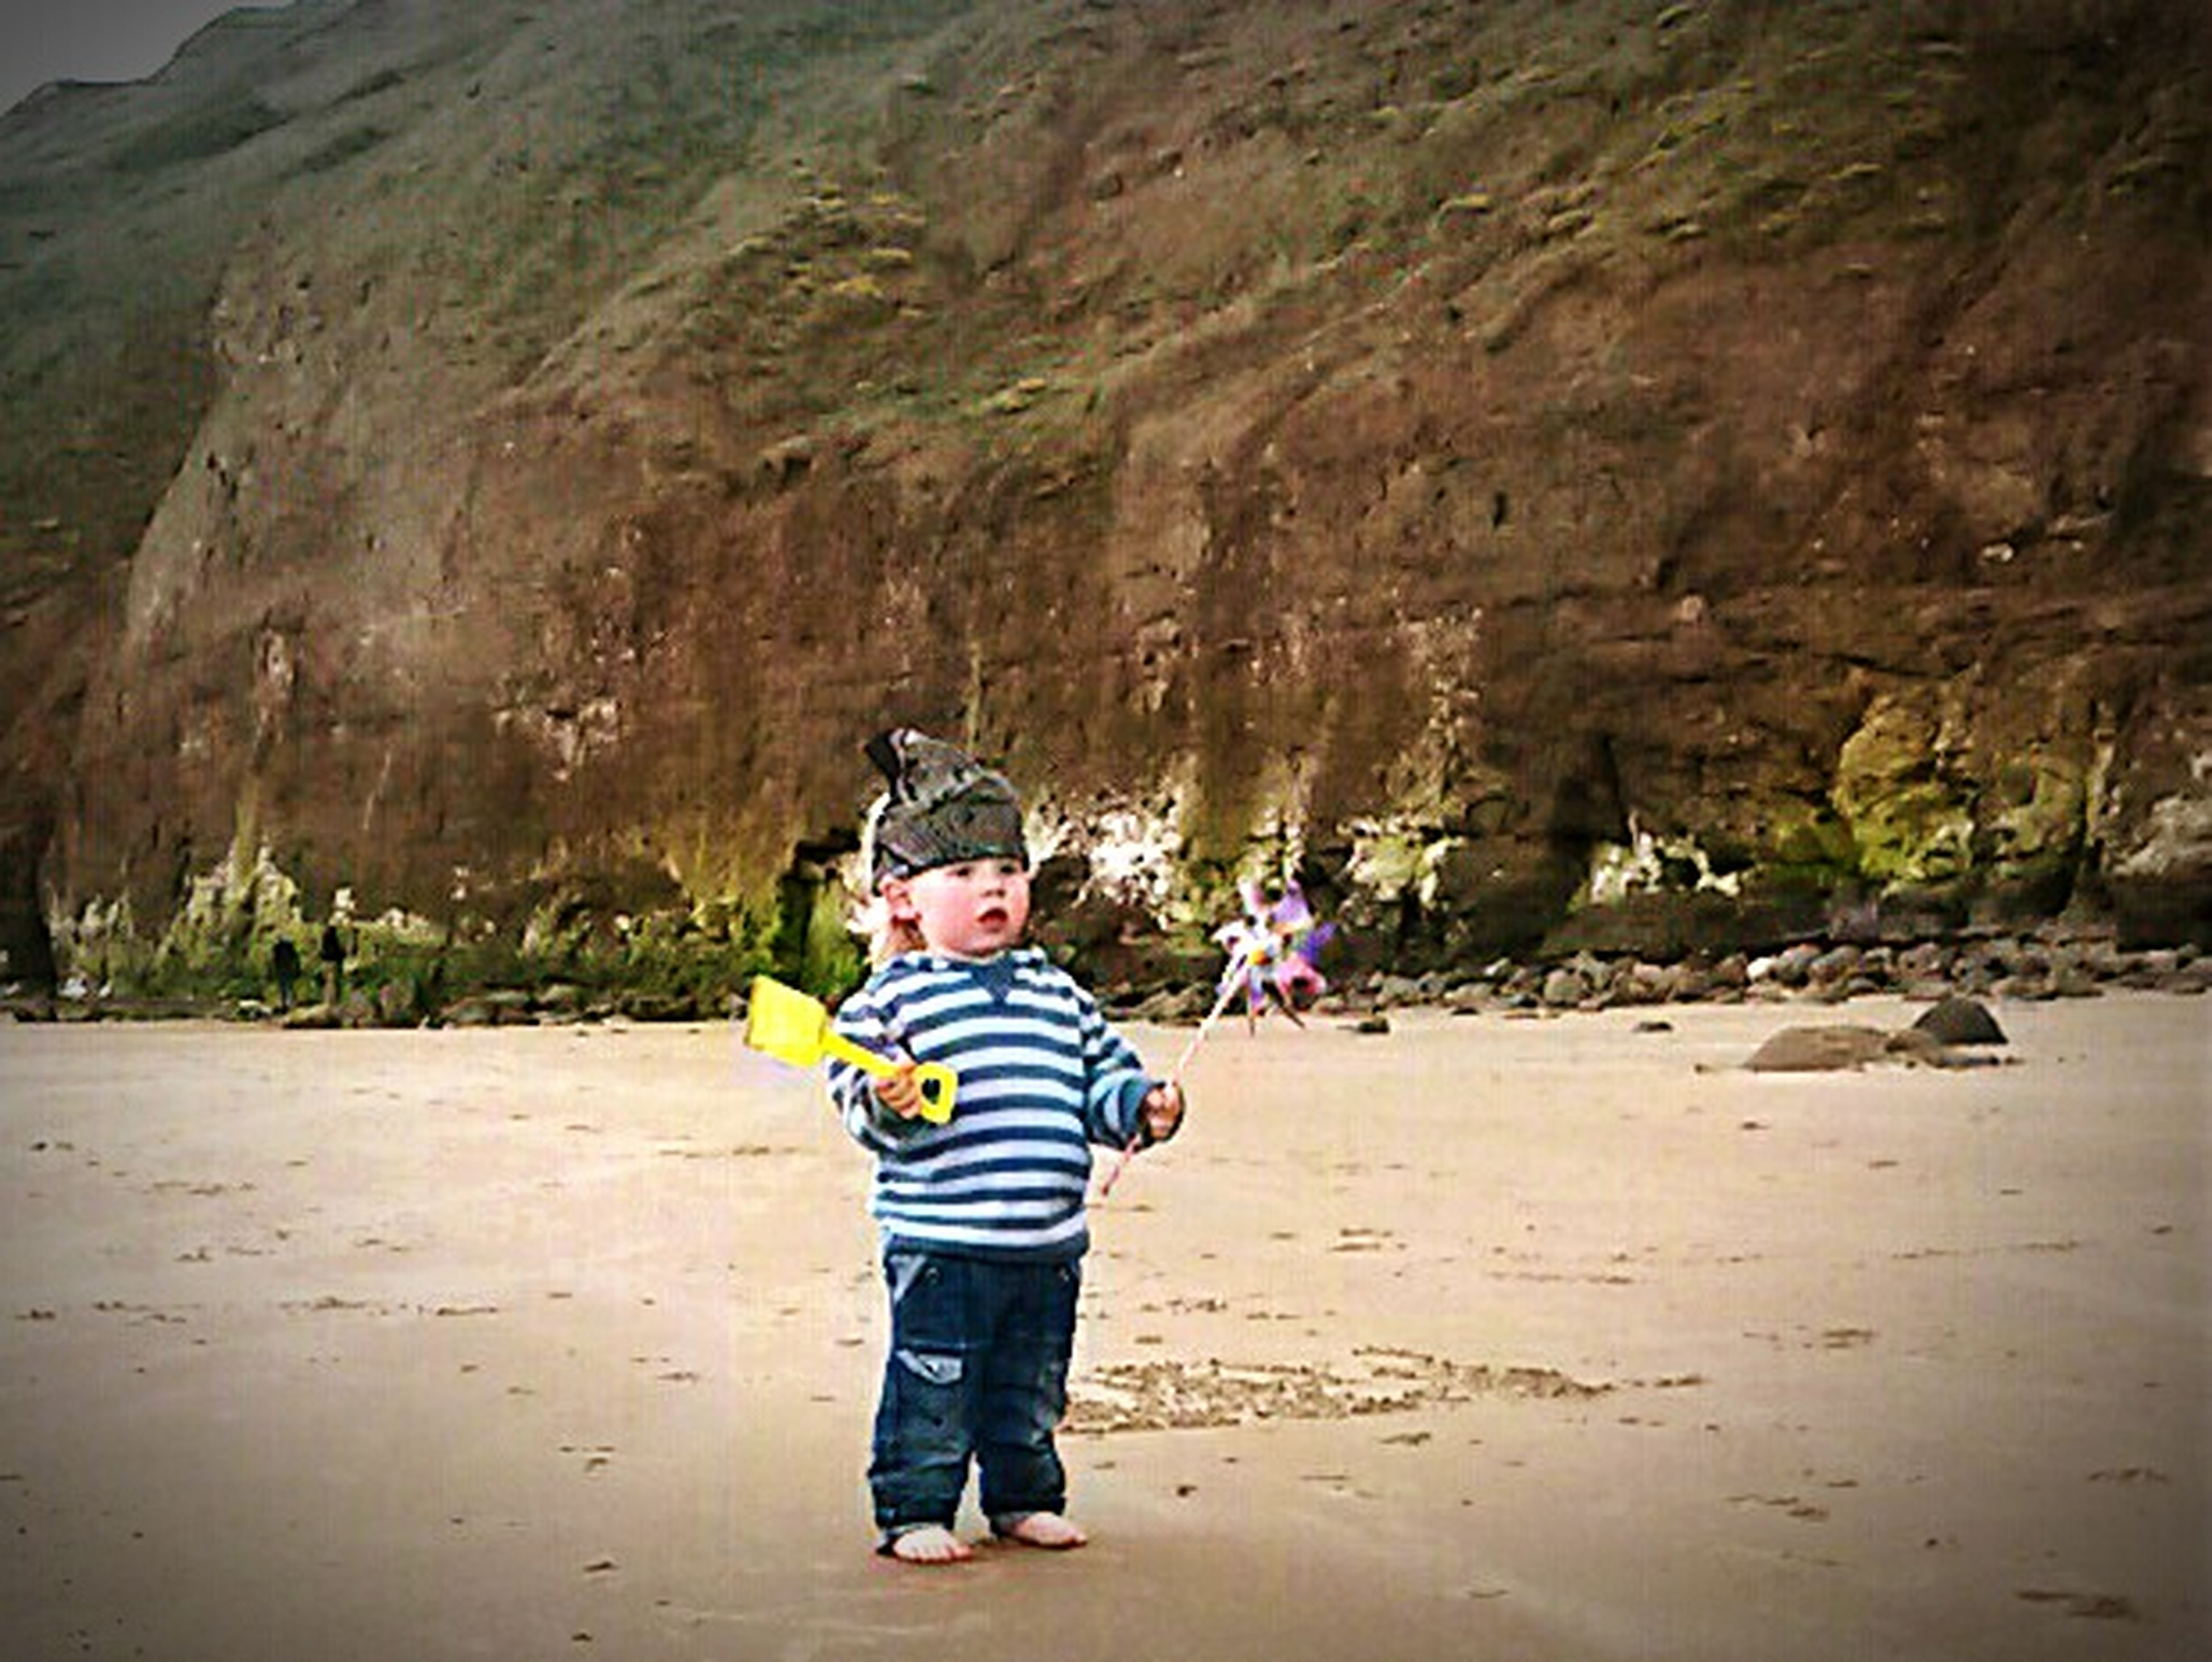 lifestyles, casual clothing, leisure activity, full length, childhood, boys, rear view, girls, togetherness, elementary age, bonding, standing, sand, person, walking, love, innocence